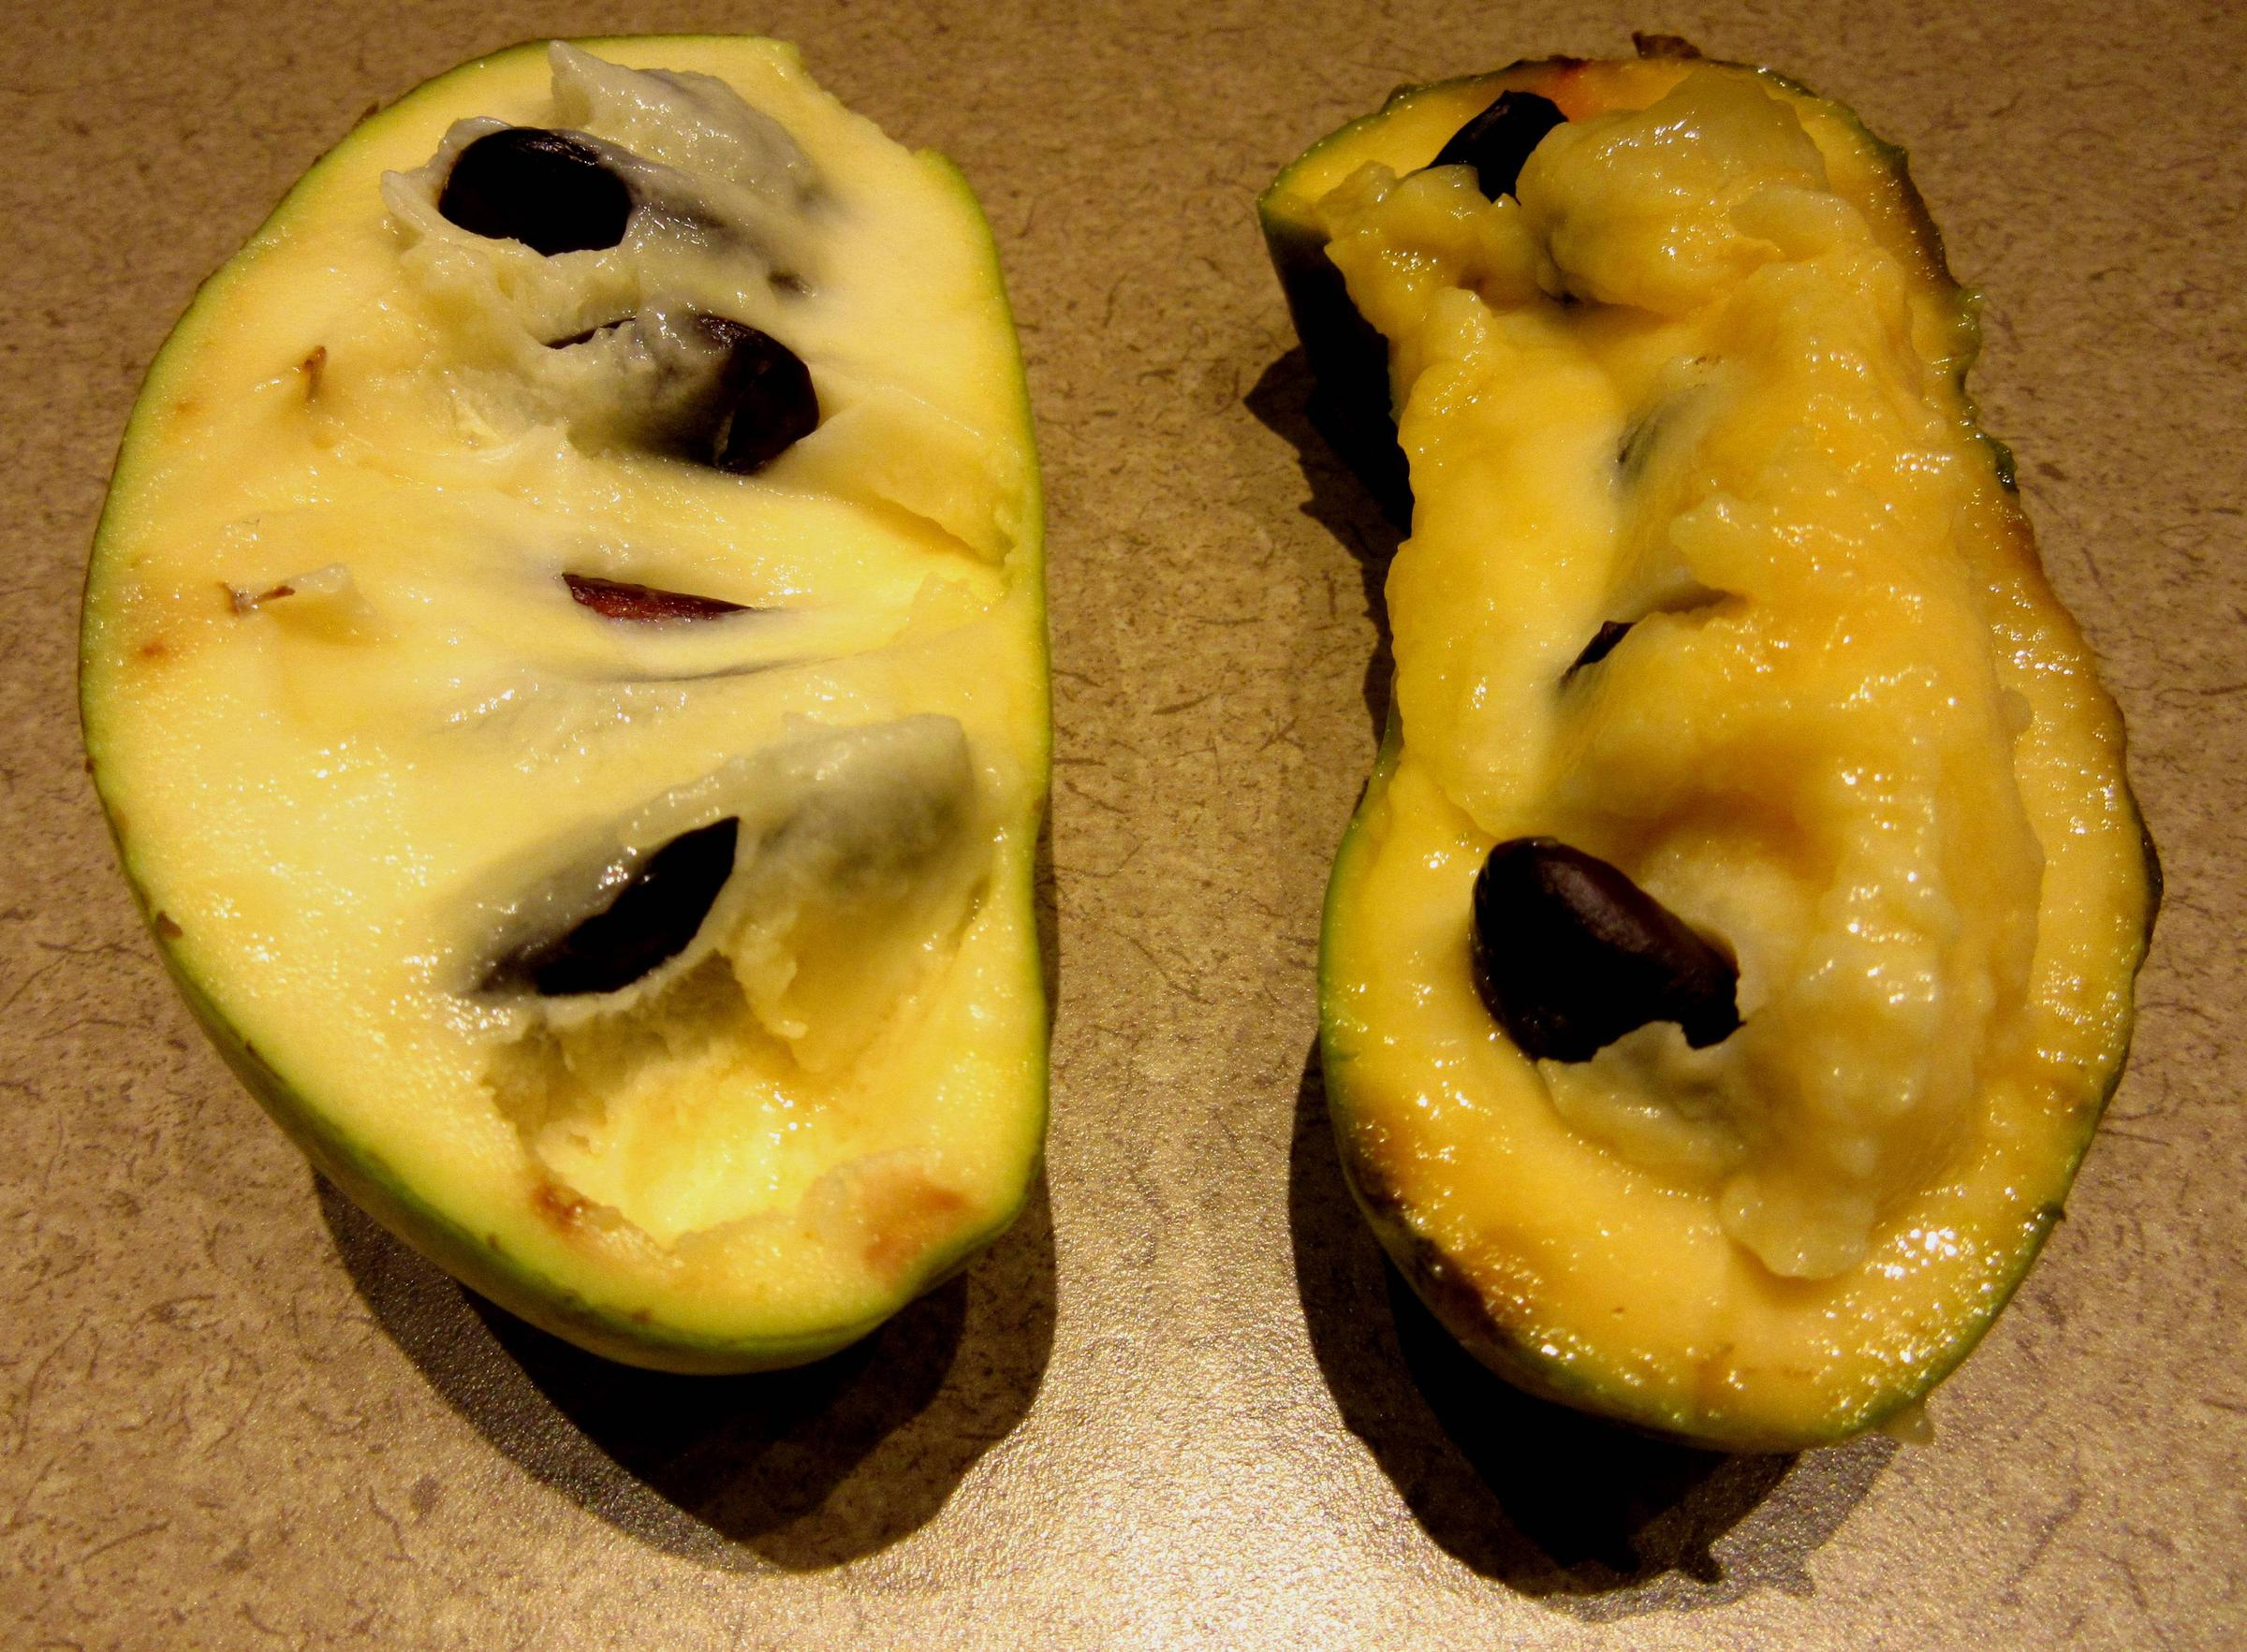 Check Out The Pawpaw S Characteristic Creamy Yellow Flesh And Large Dark Seeds